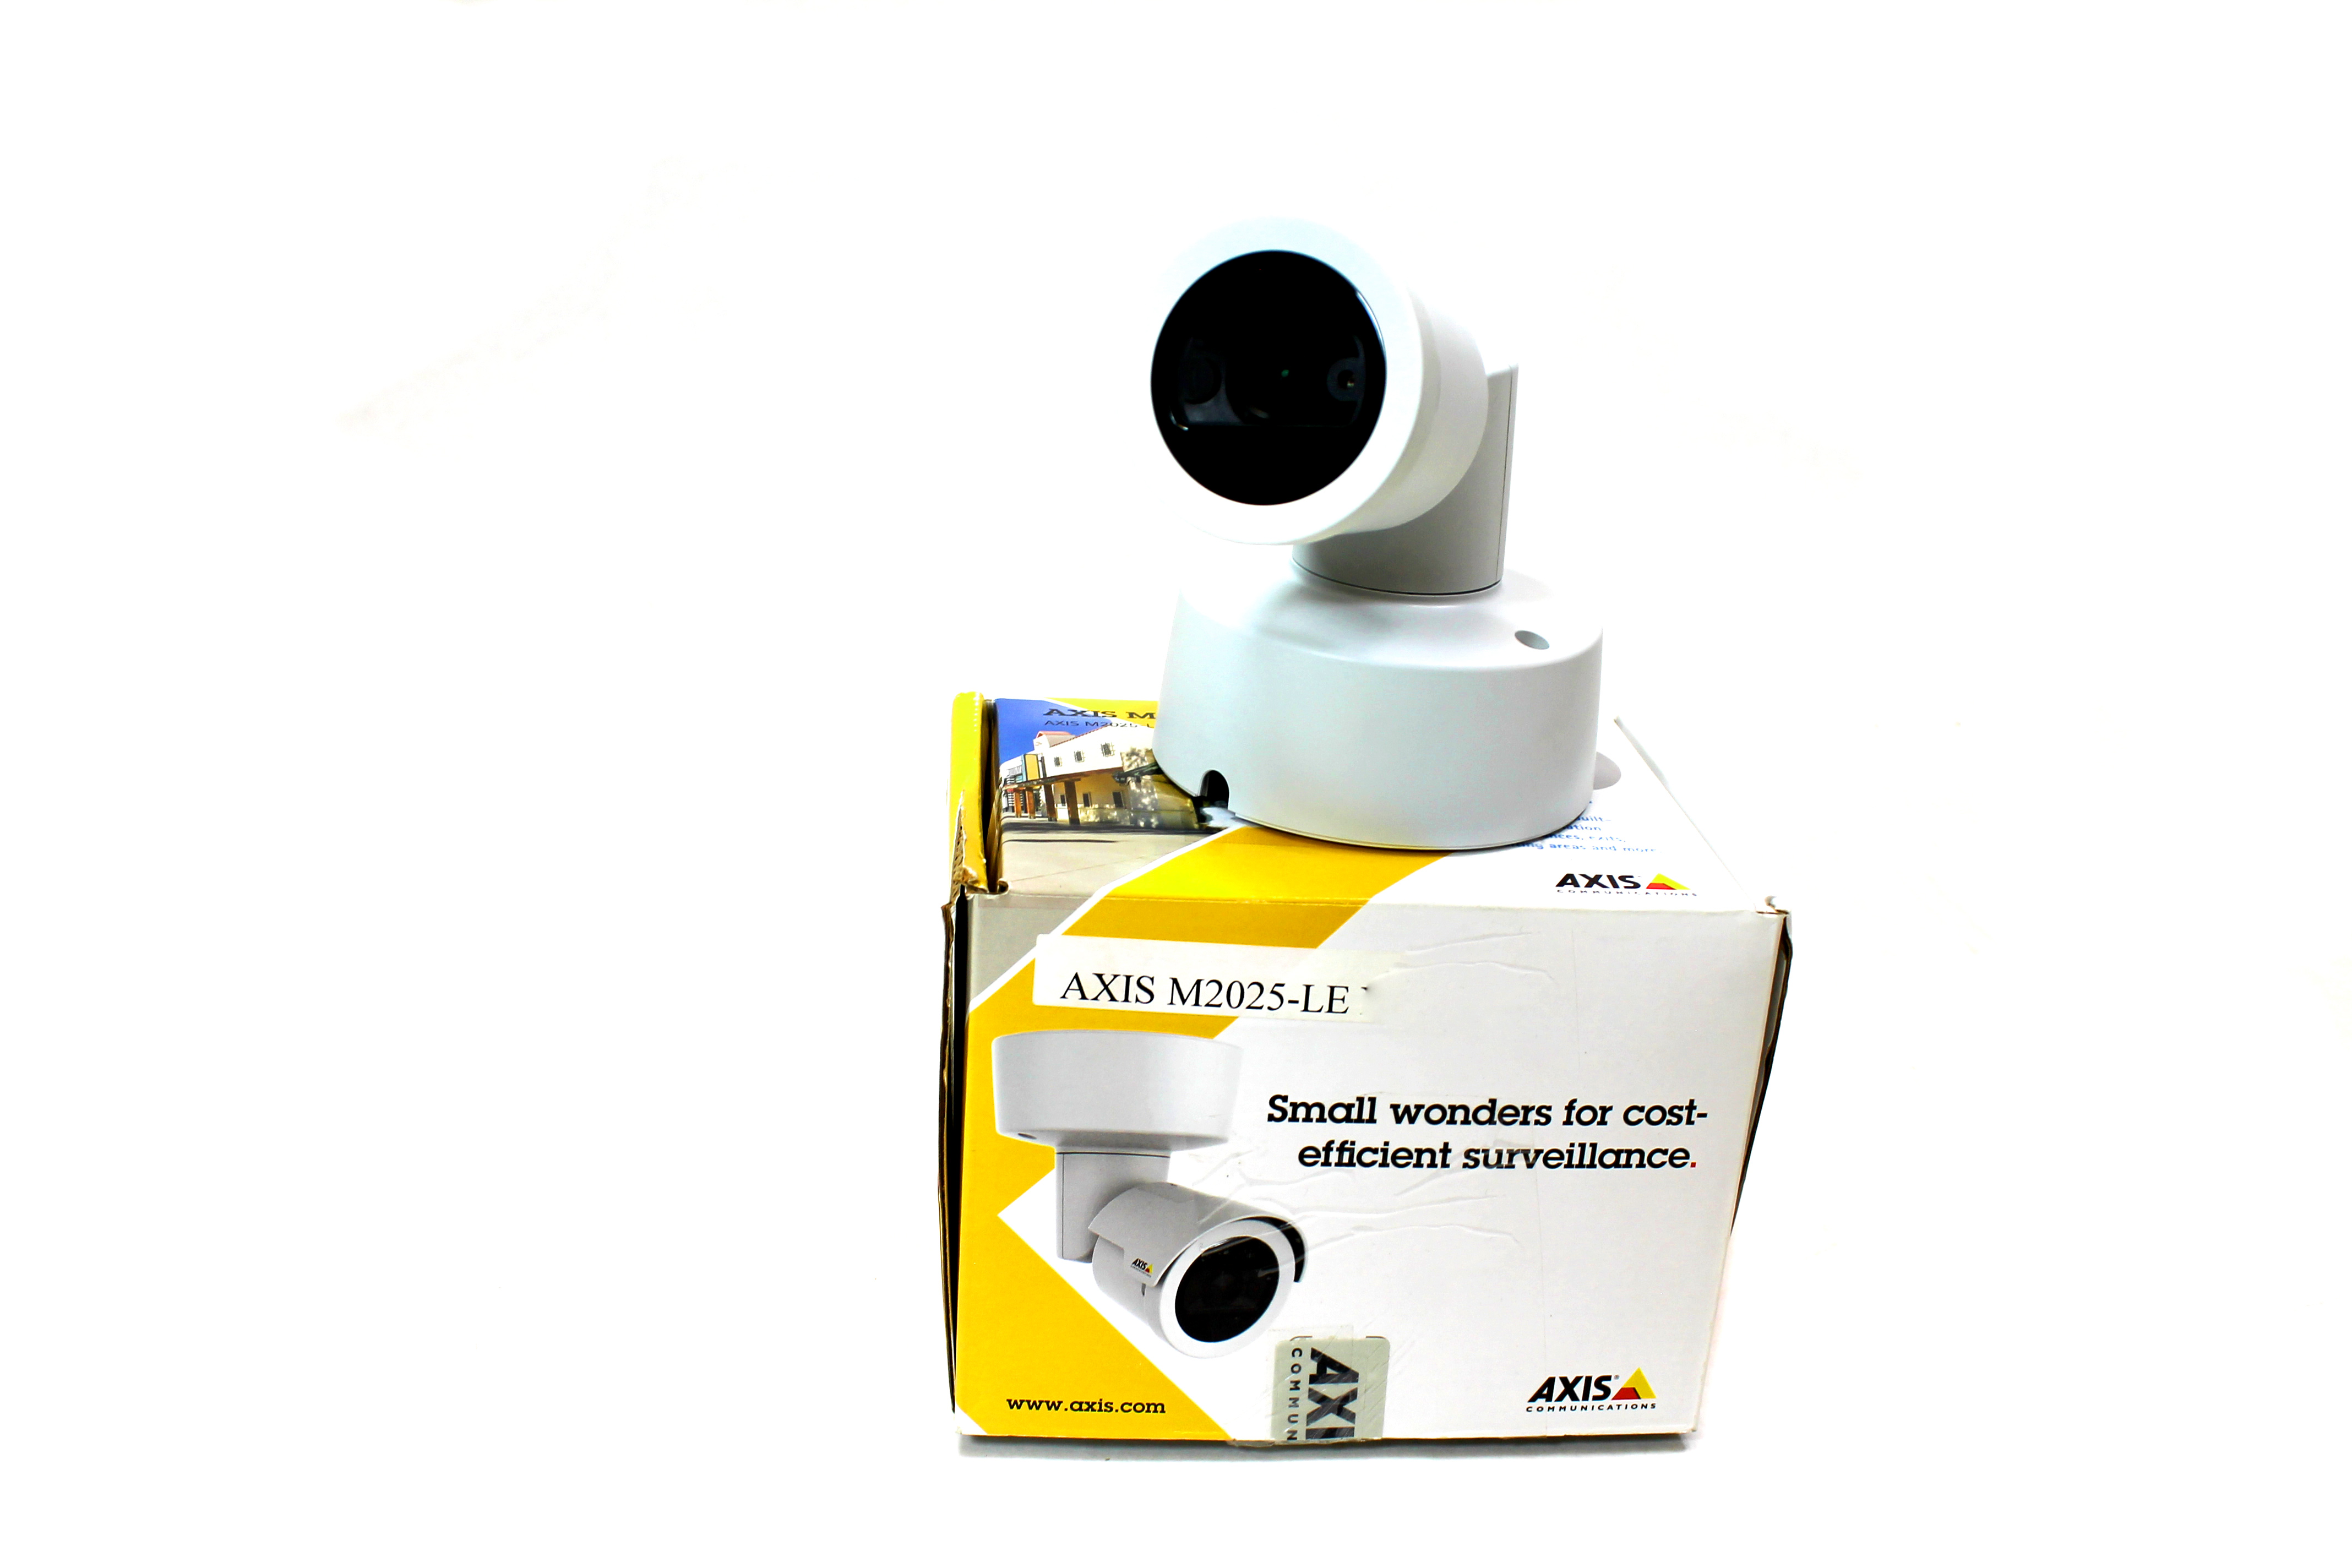 Axis M2025-LE Network Surveillance Camera PN 0911-001